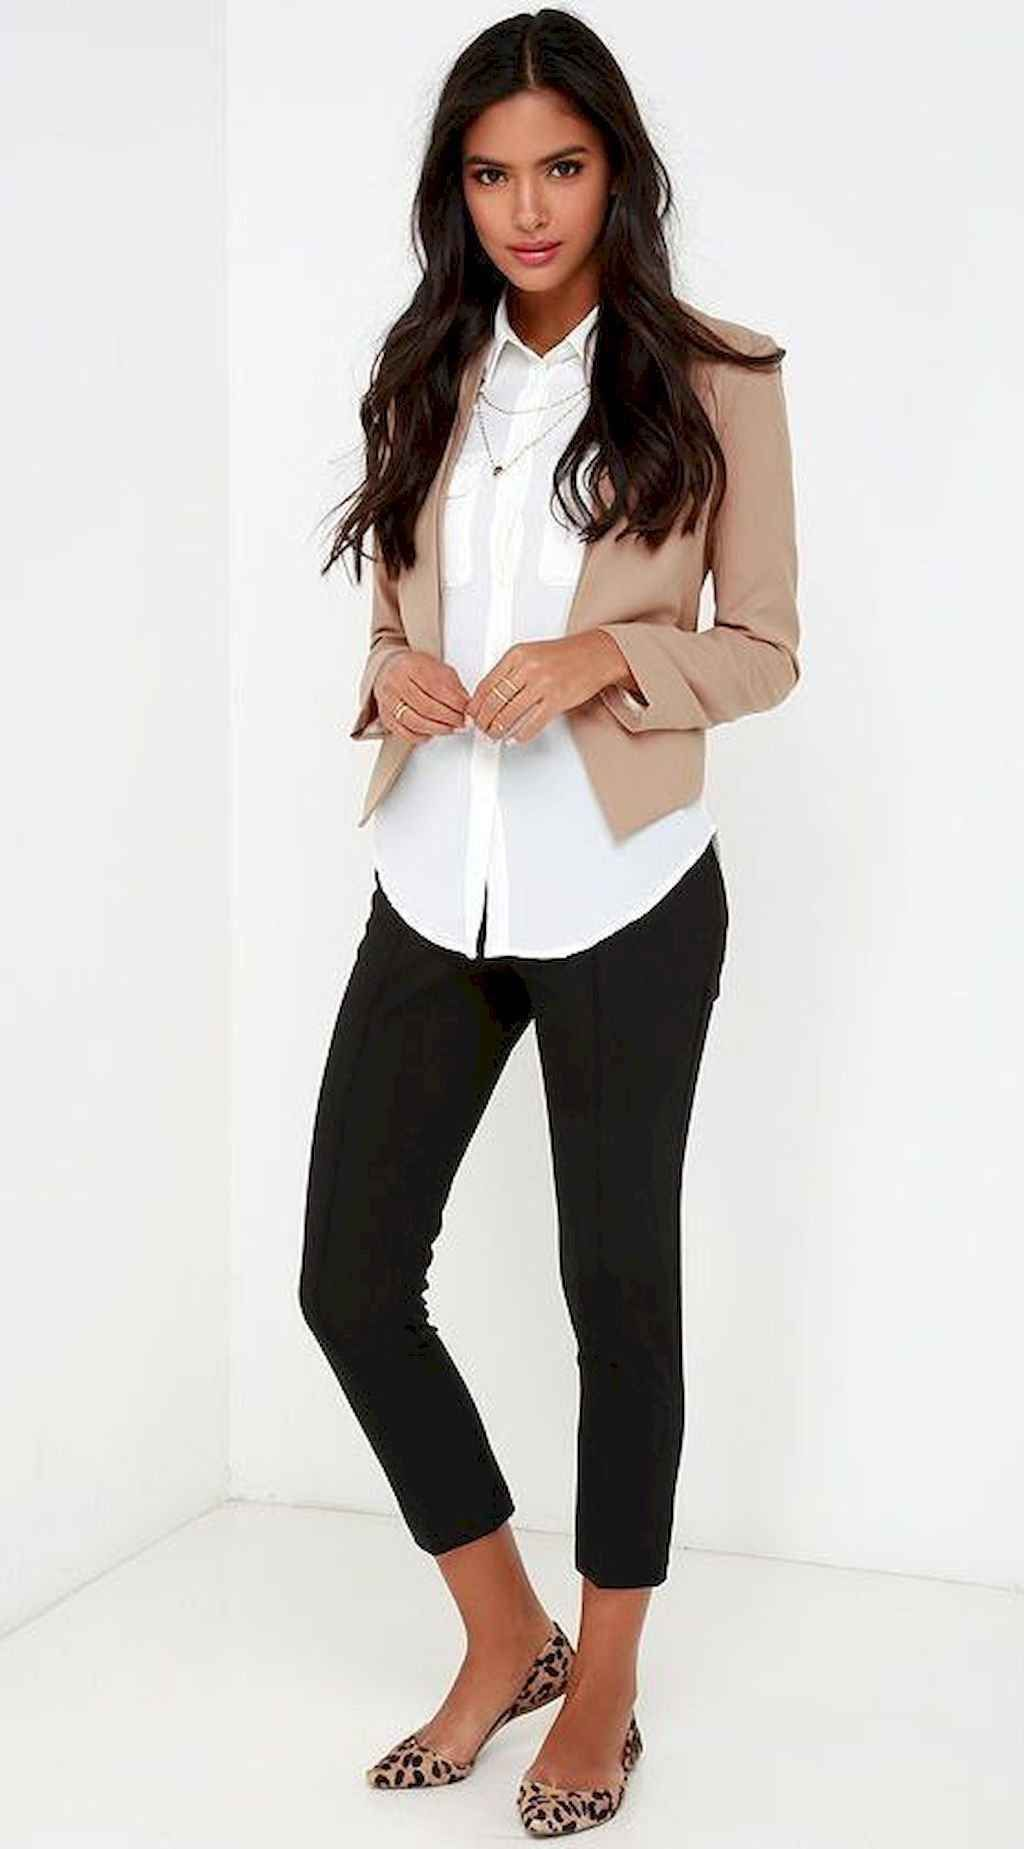 05 Best Business Casual Outfit Ideas for Women | Business ...